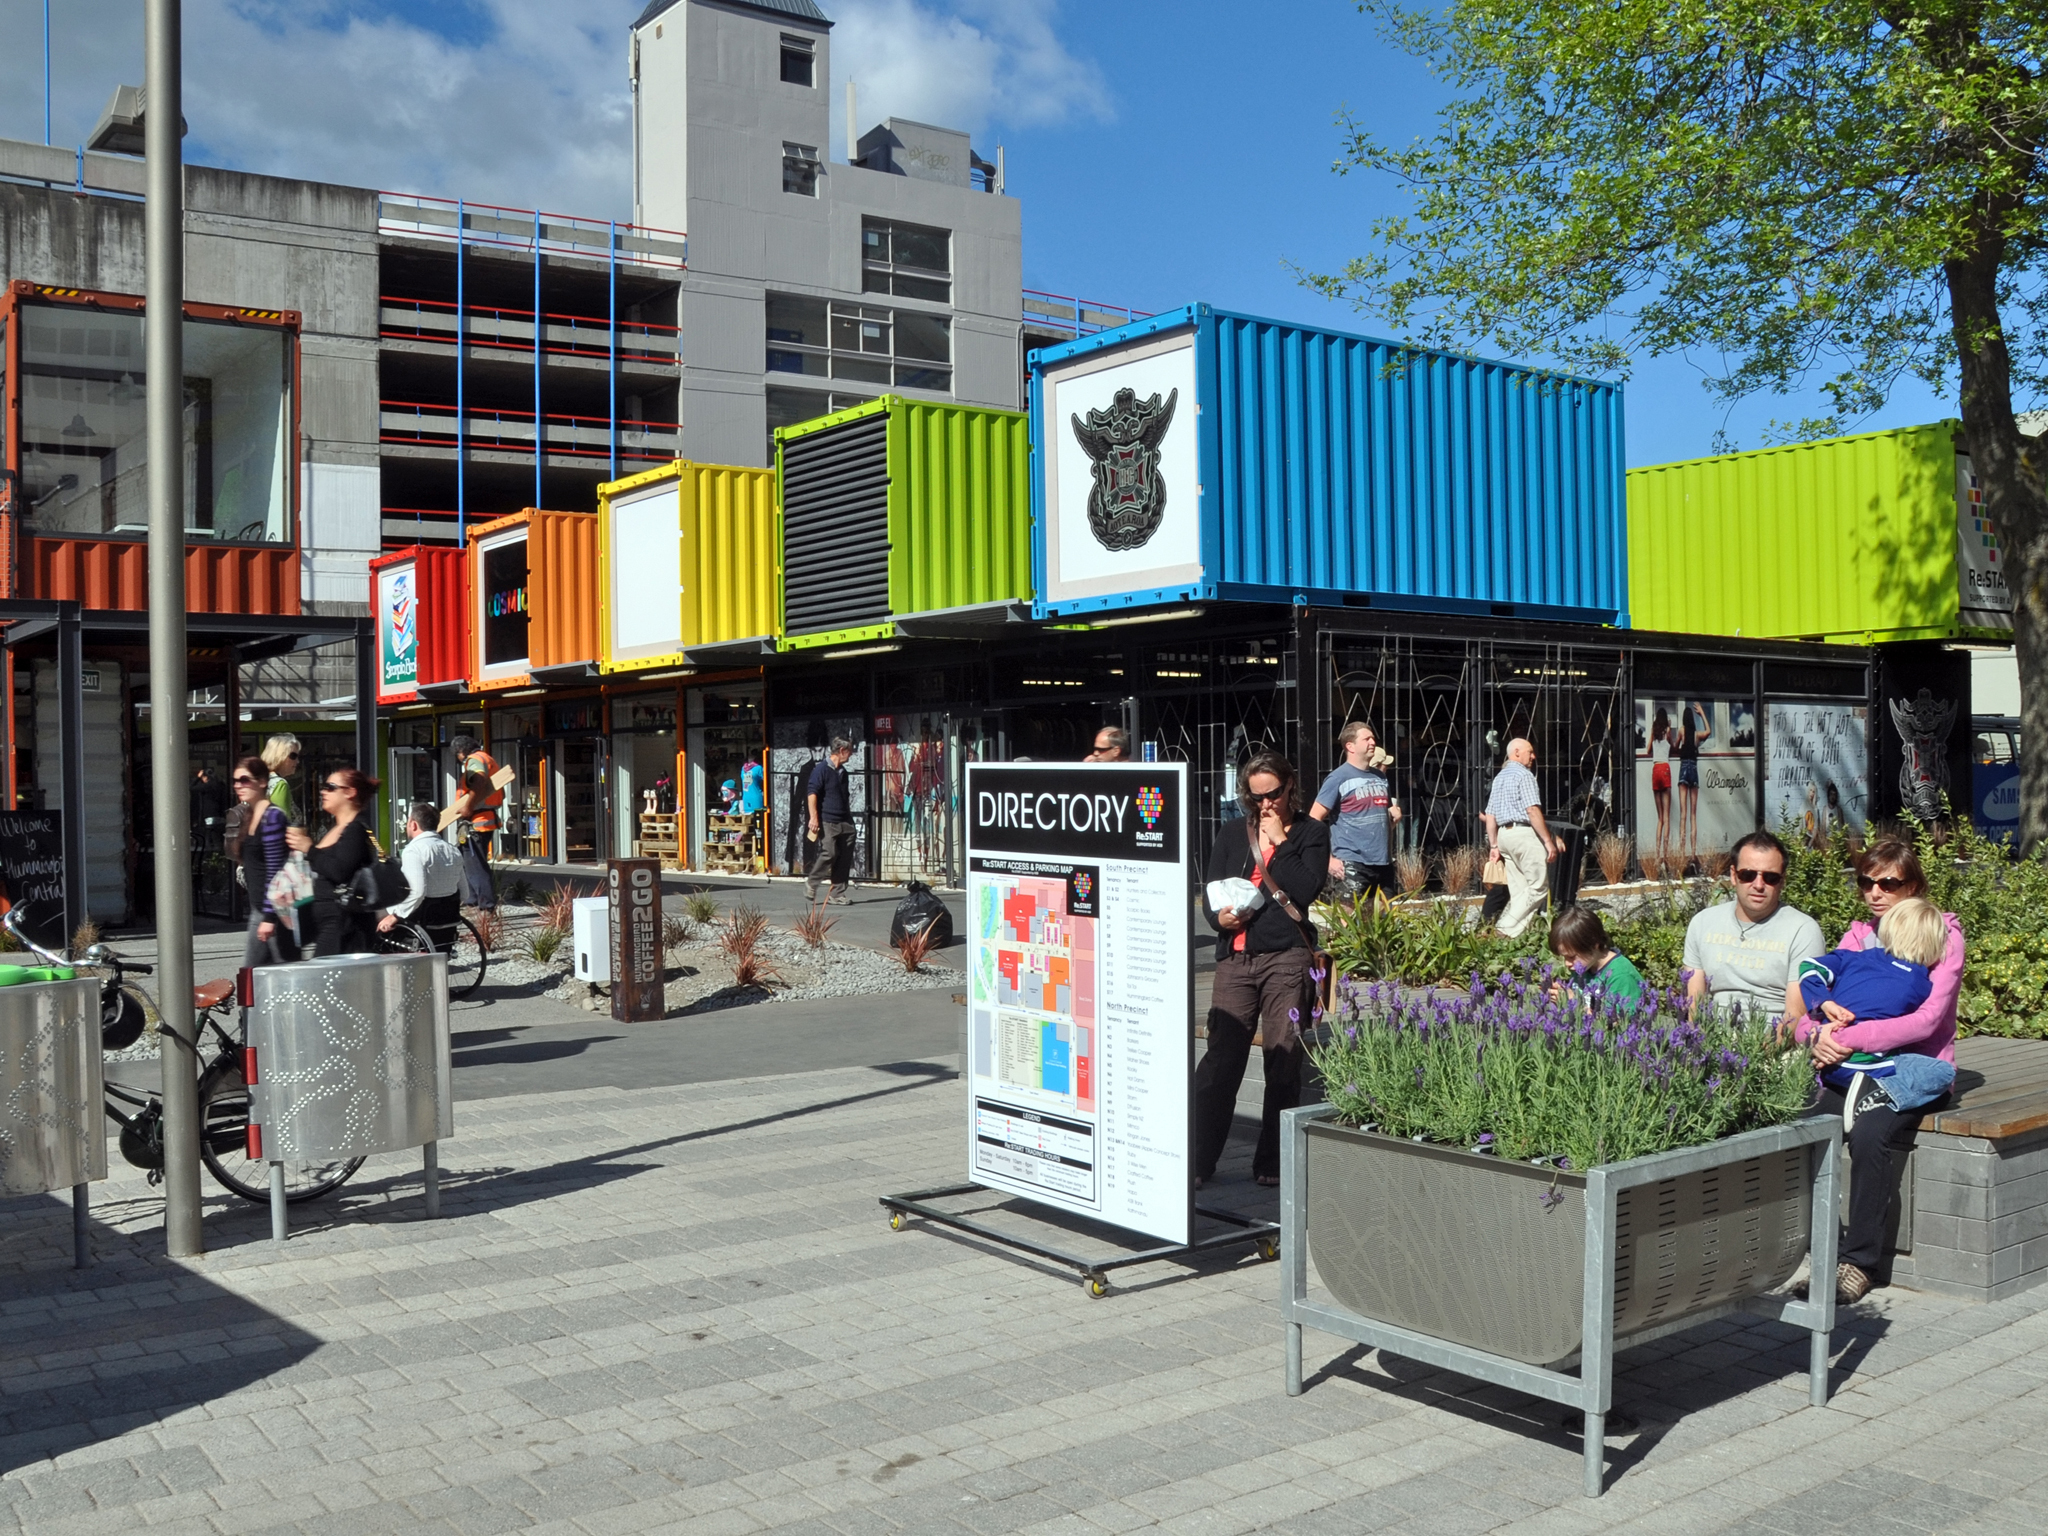 quake city, things to do in christchurch, new zealand